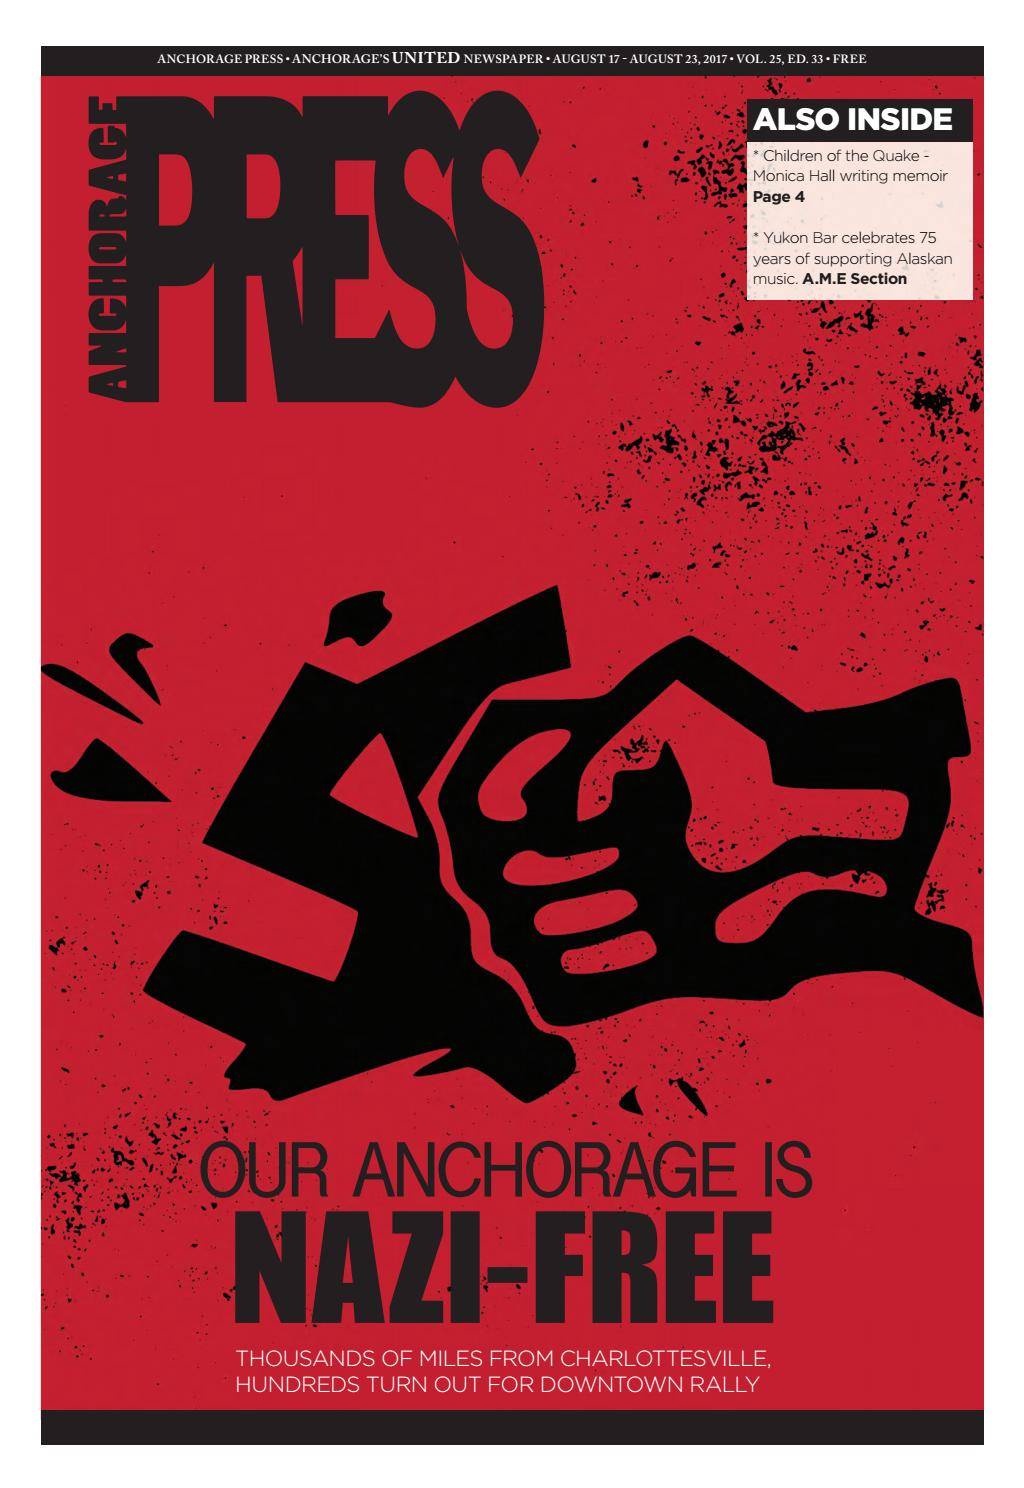 anchorage press 081717 by wick communications issuu